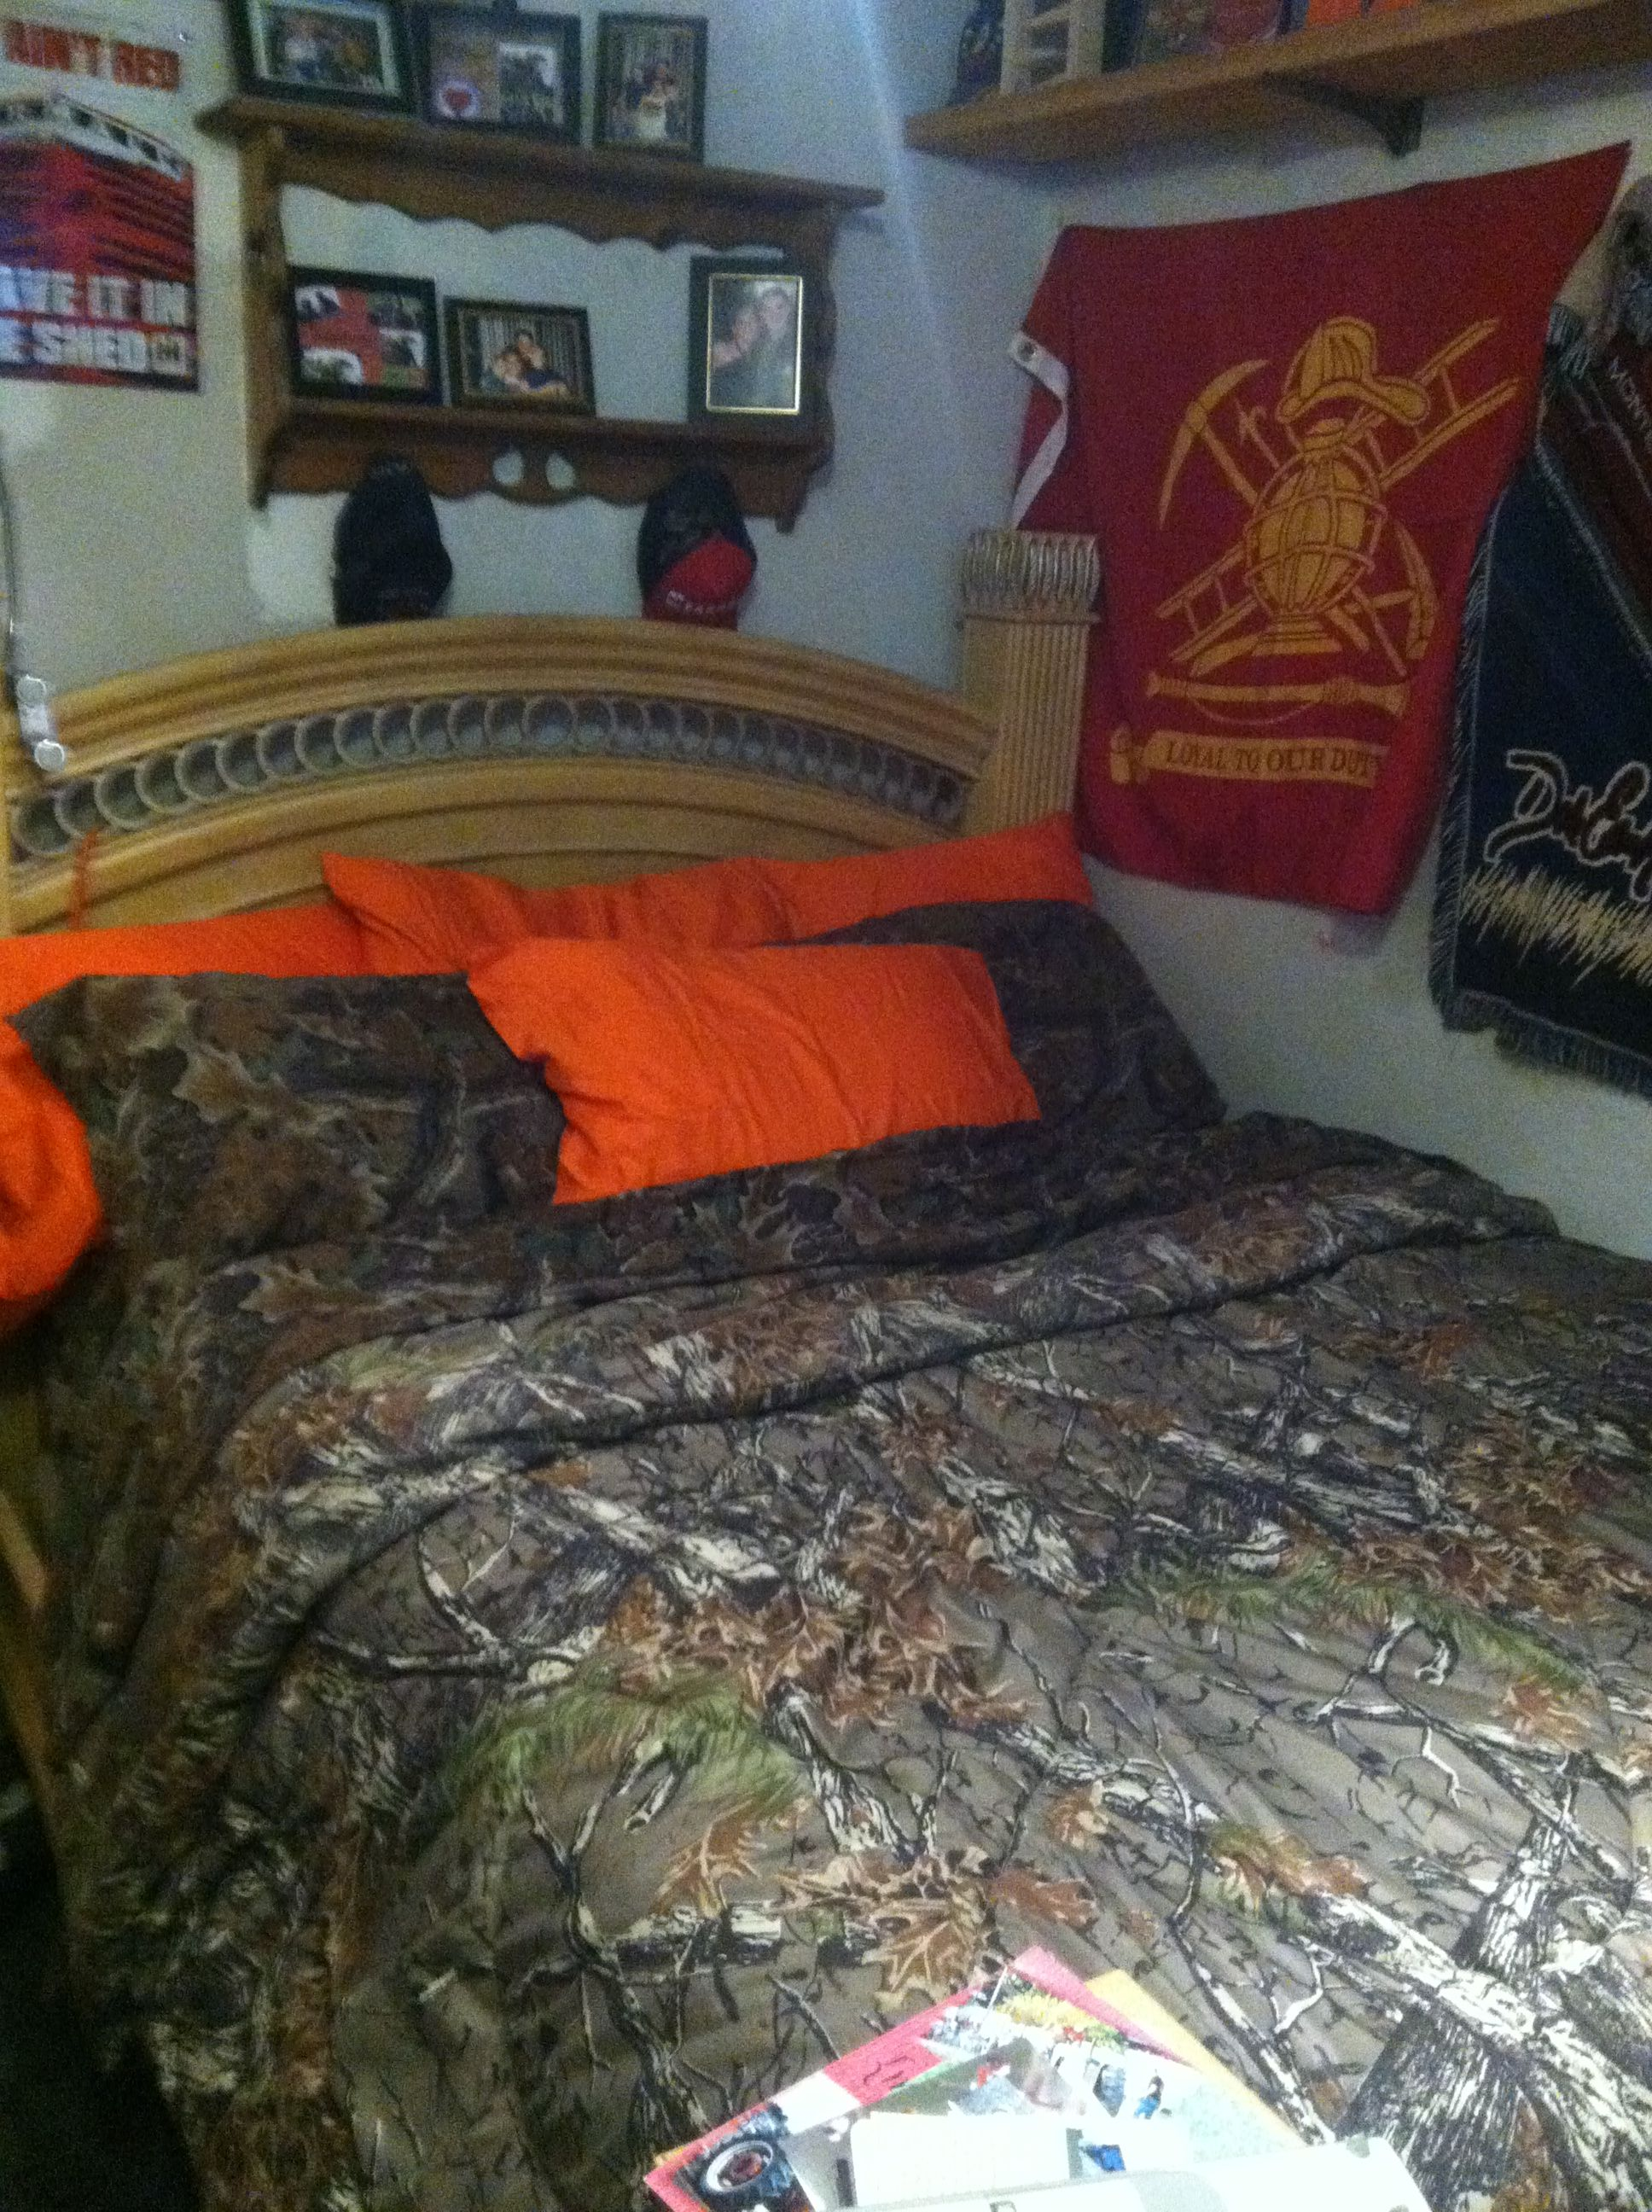 Genial Cabelau0027s Camo Bed Set With Additional Hunter Orange Pillow Cases :)